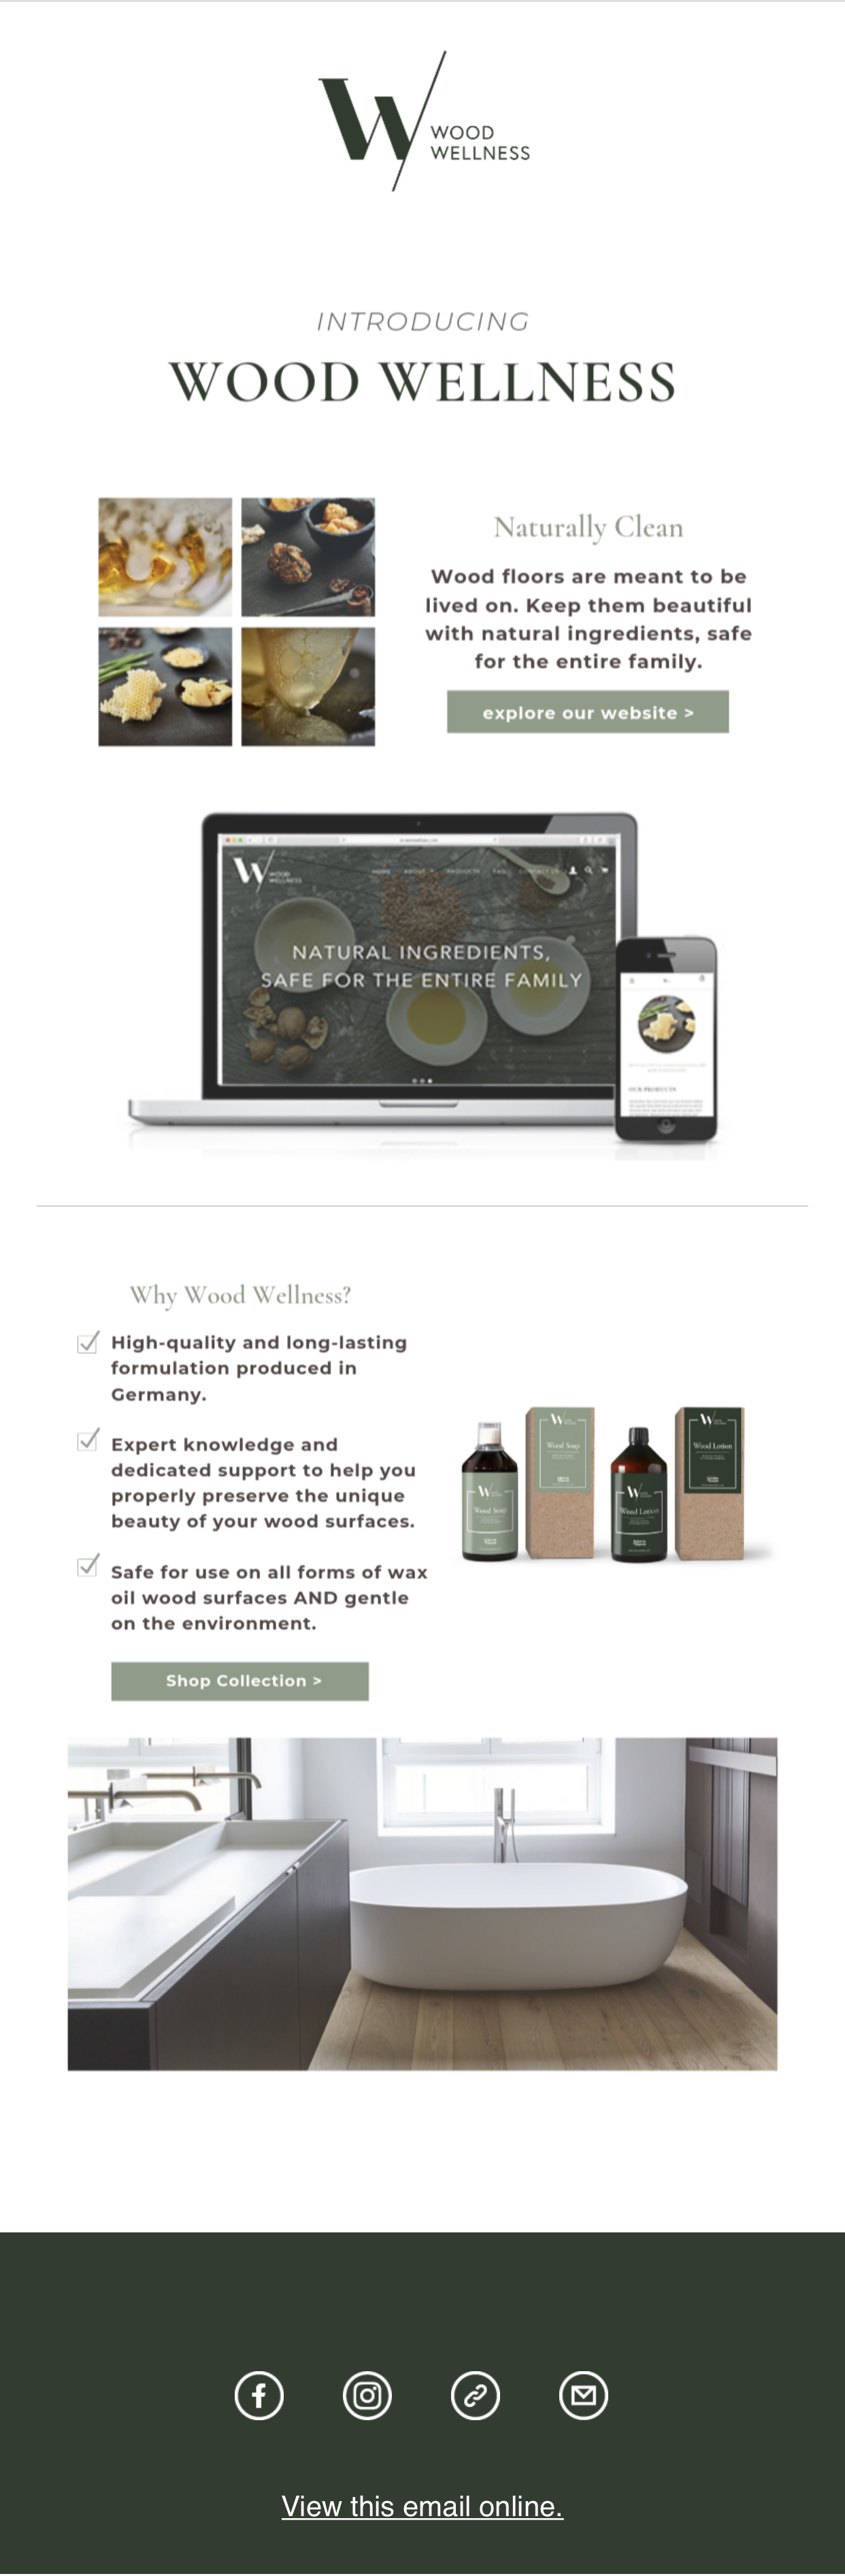 WoodWellness-Email.png